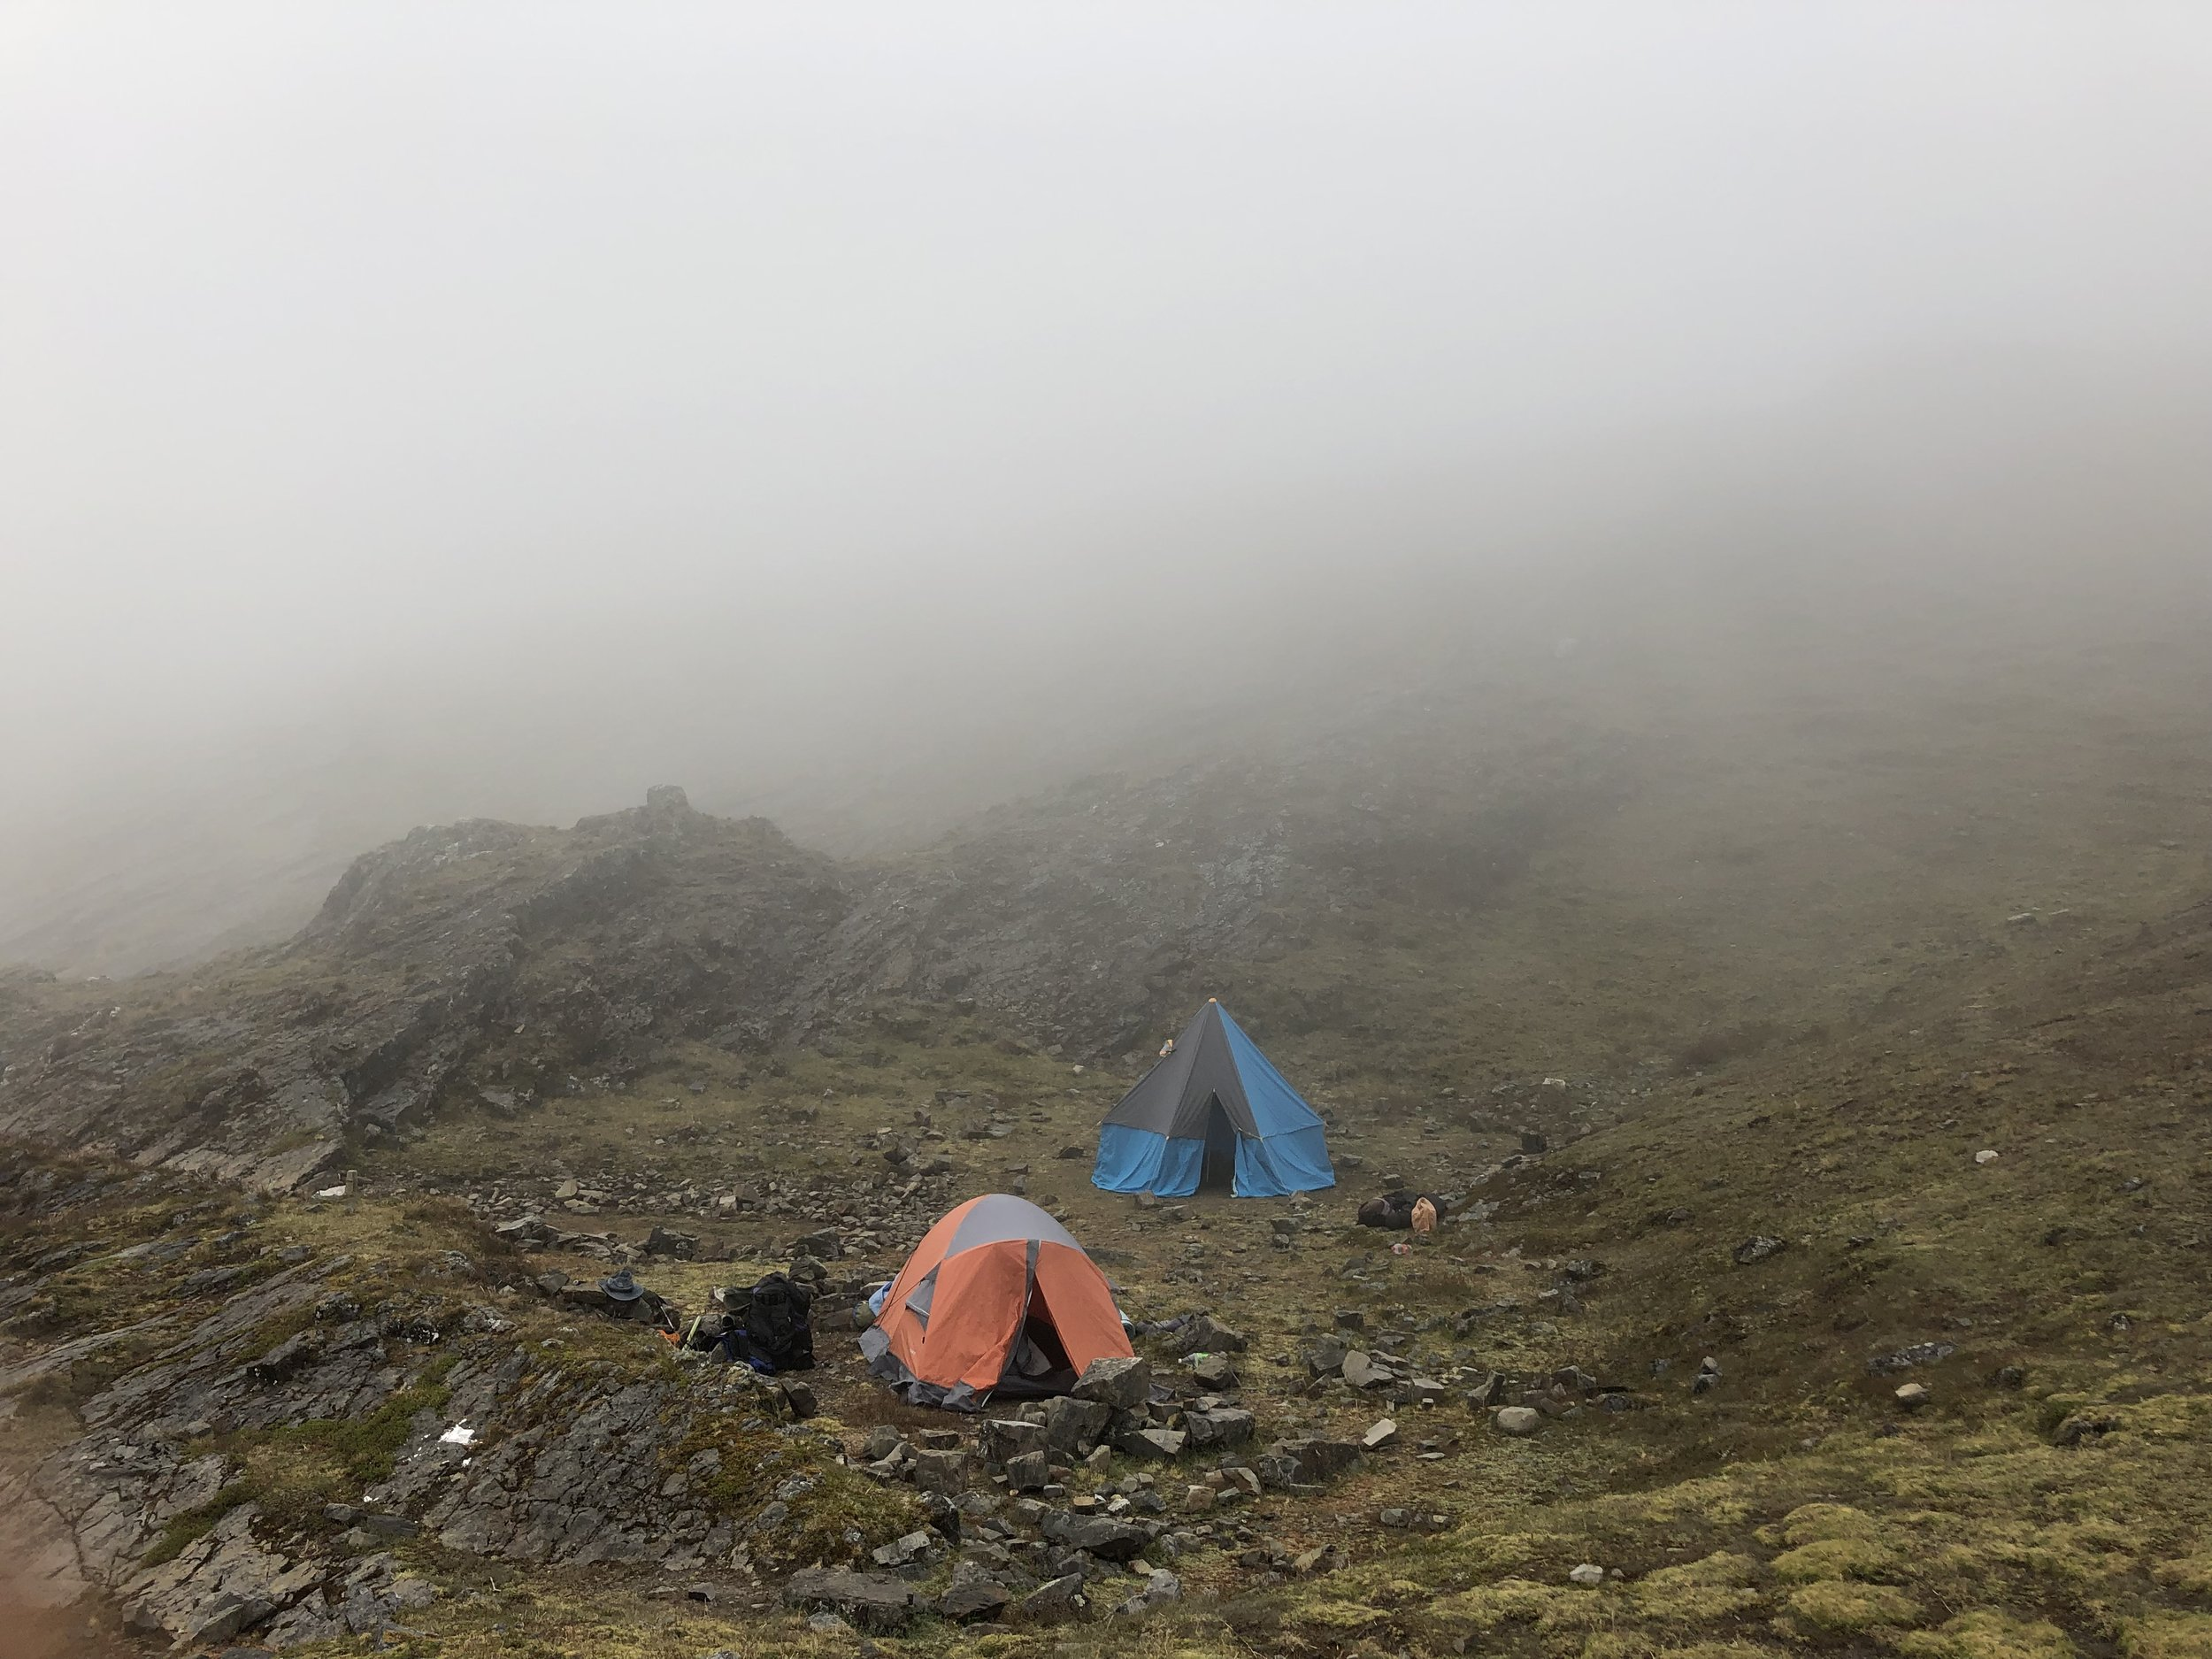 Then the clouds rolled in and we did not see anything until the morning.